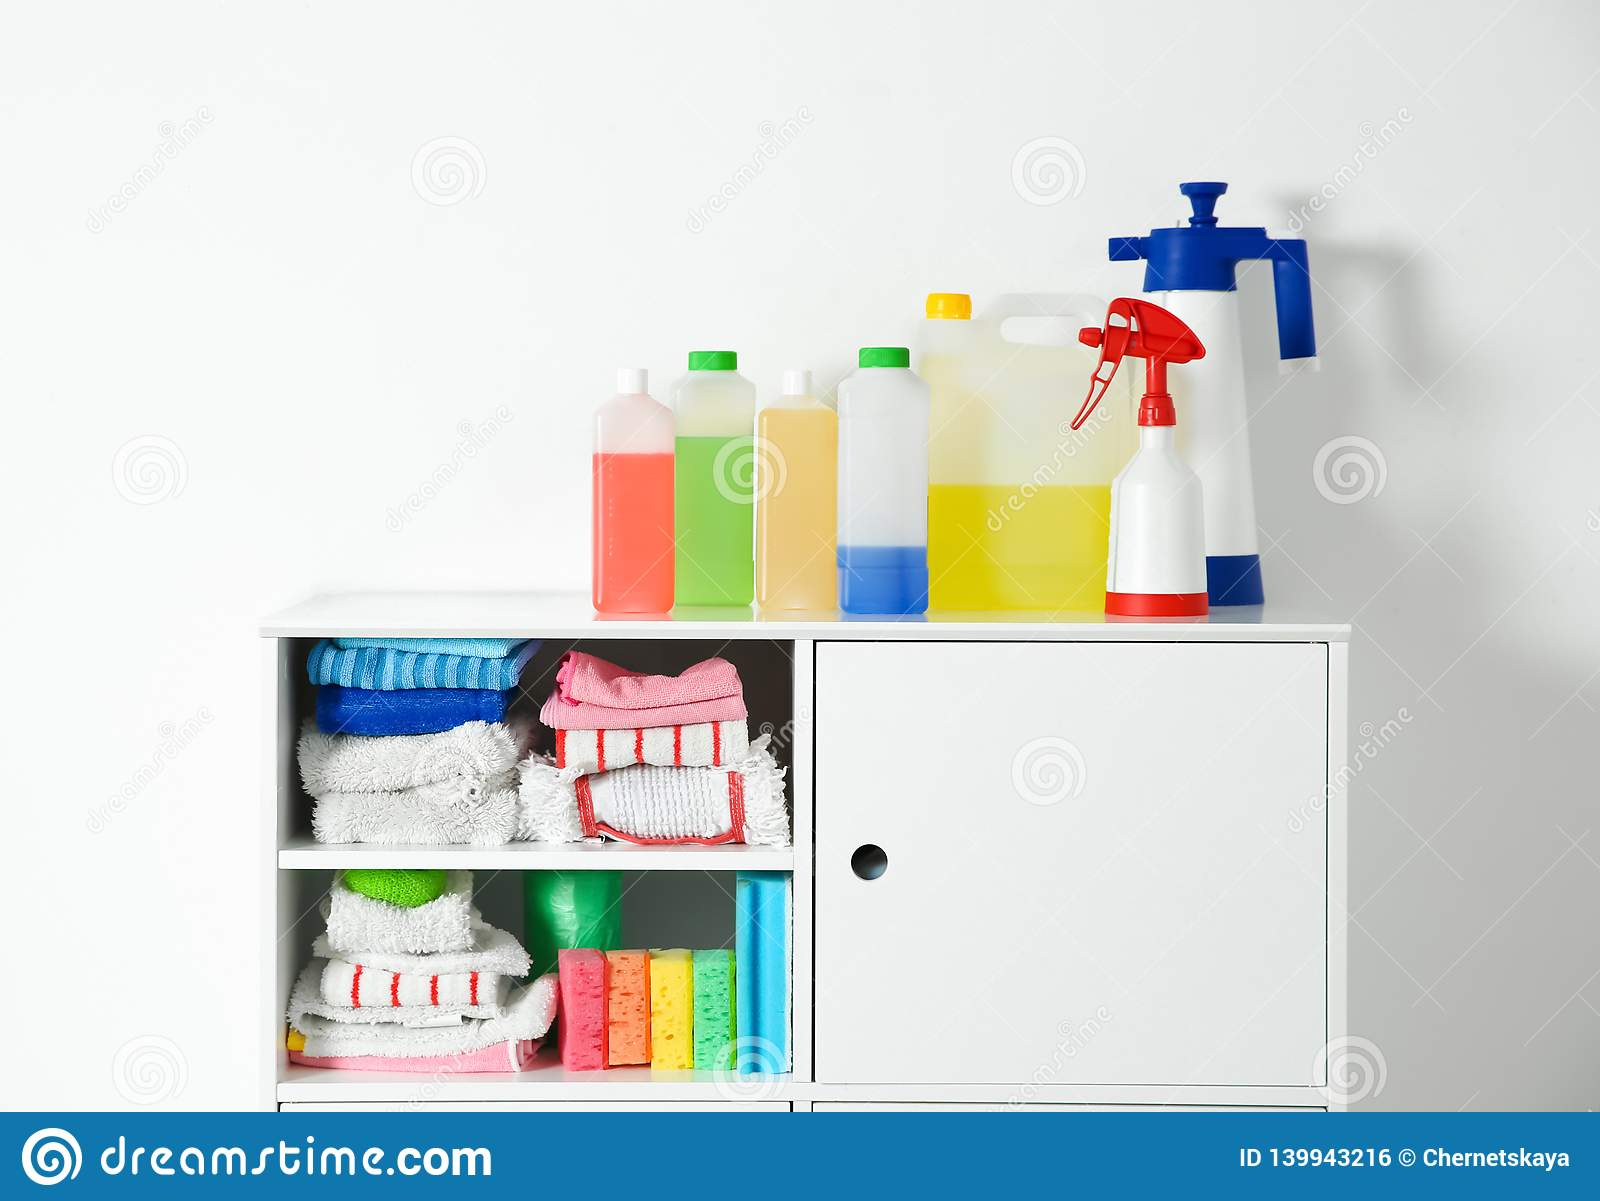 Cabinet With Different Cleaning Supplies On White Stock Photo